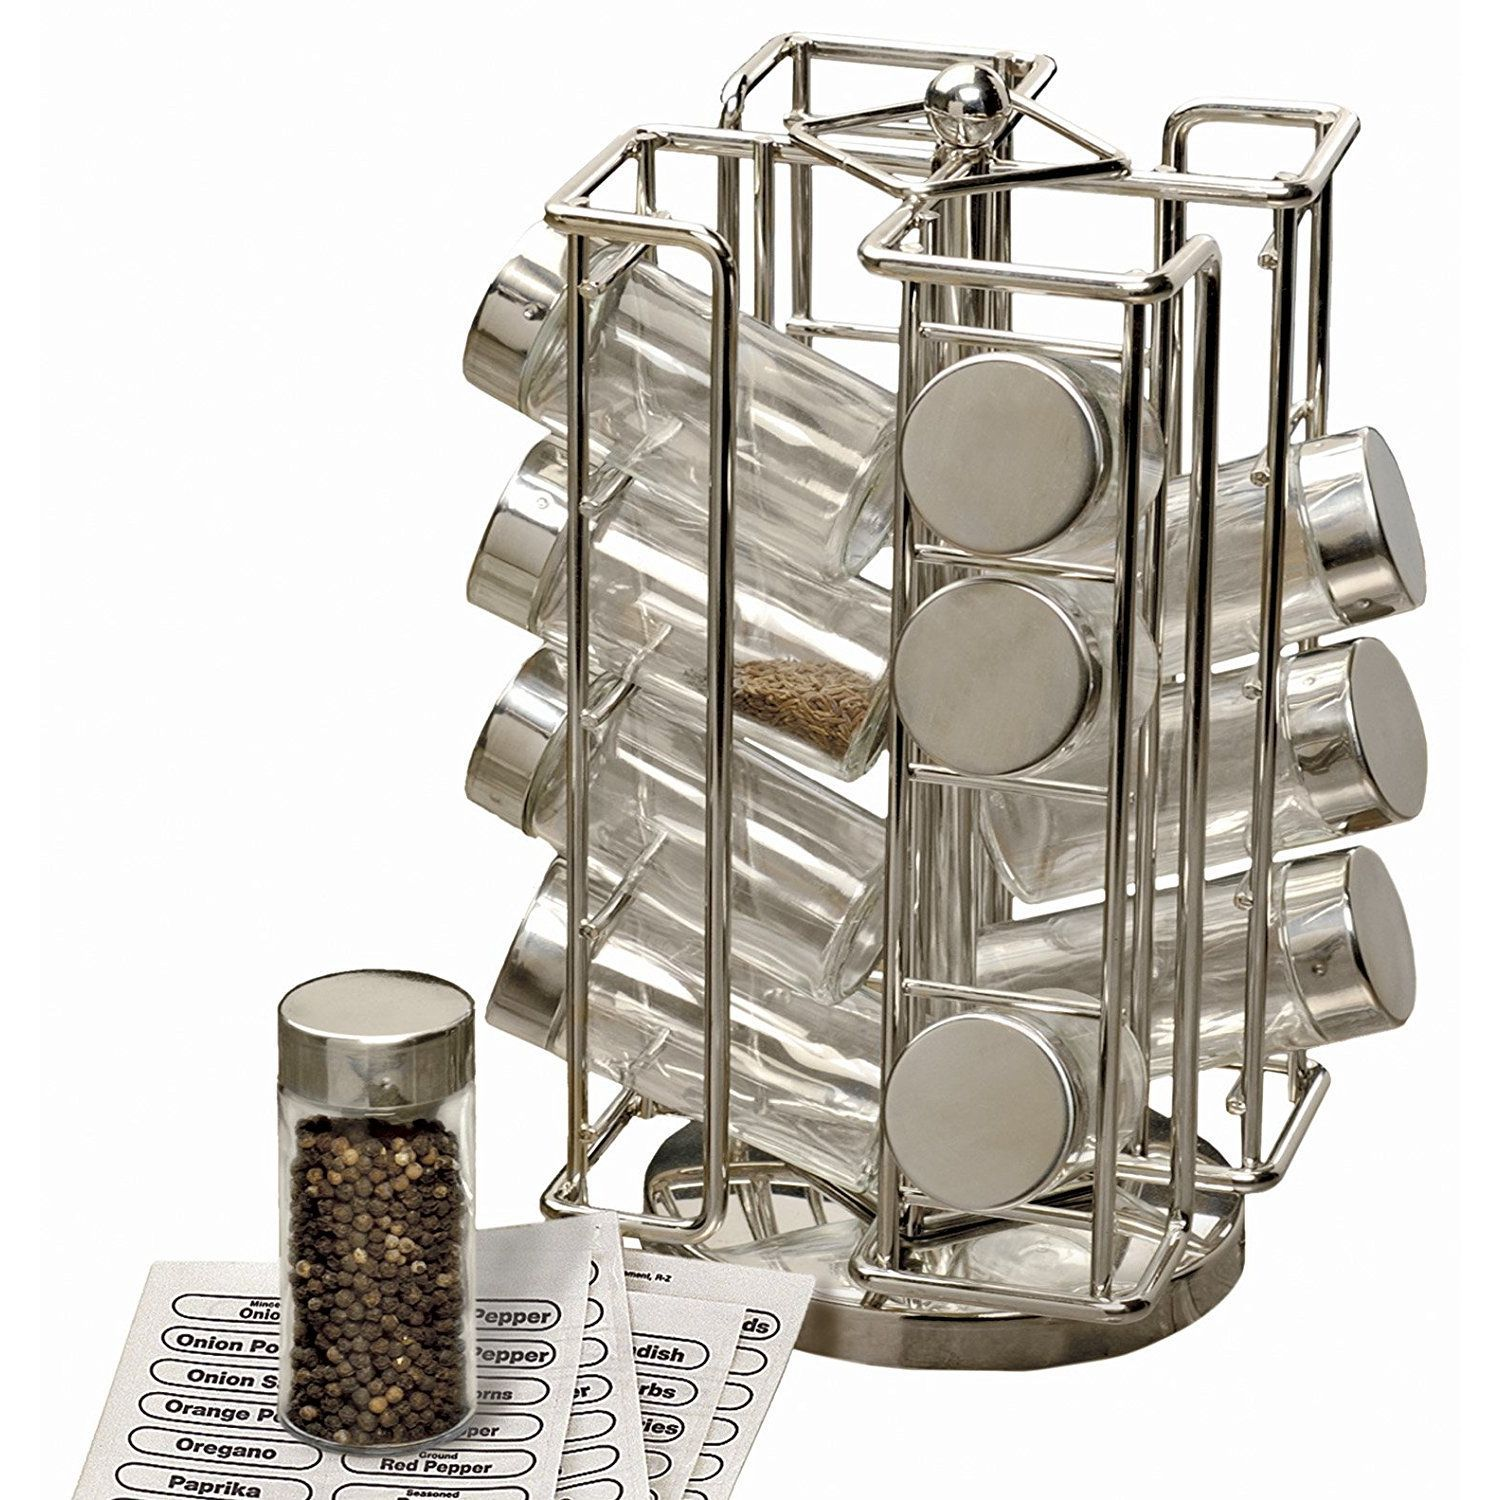 Eliminate Cabinet Clutter With The RSVP 16 Bottle Revolving Spice Rack.  Made Of Stainless Steel